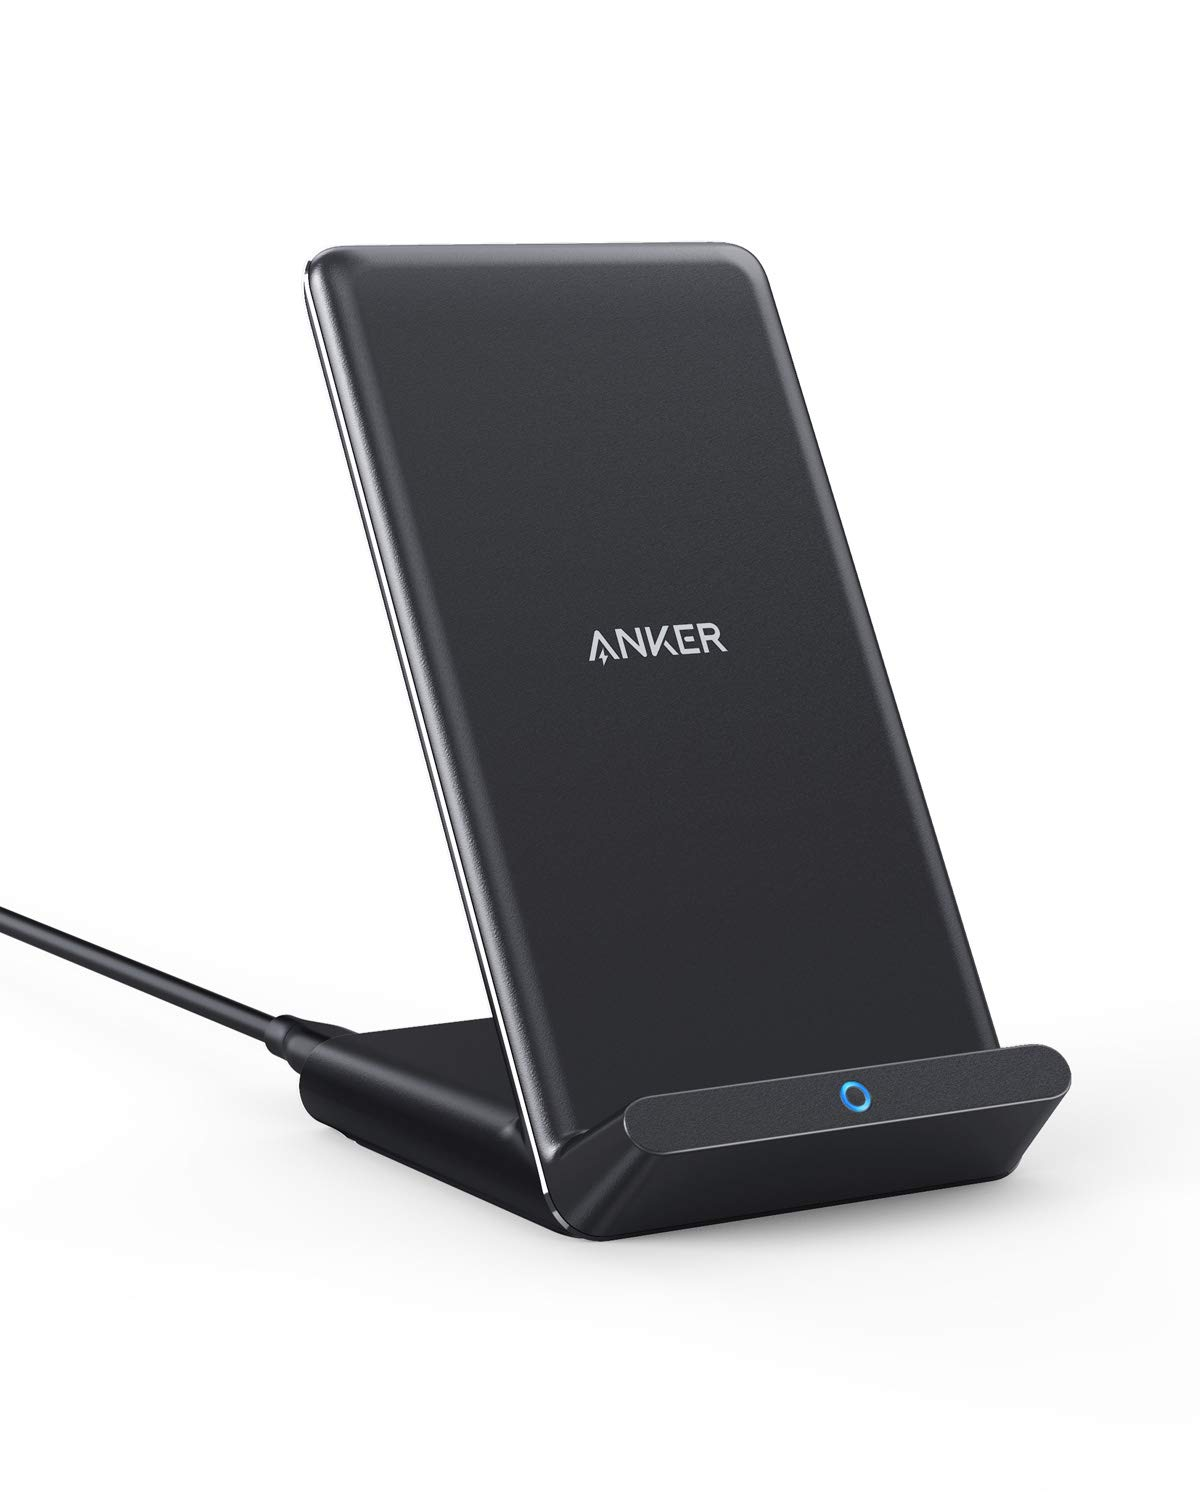 Anker Wireless Charger, 10W Max PowerWave Stand Upgraded, Qi-Certified, 7.5W for iPhone 11, 11 Pro, 11 Pro Max, XR, Xs Max, XS, X, 8, 8 Plus, 10W for Galaxy S10 S9 S8, Note 10 Note 9 (No AC Adapter)